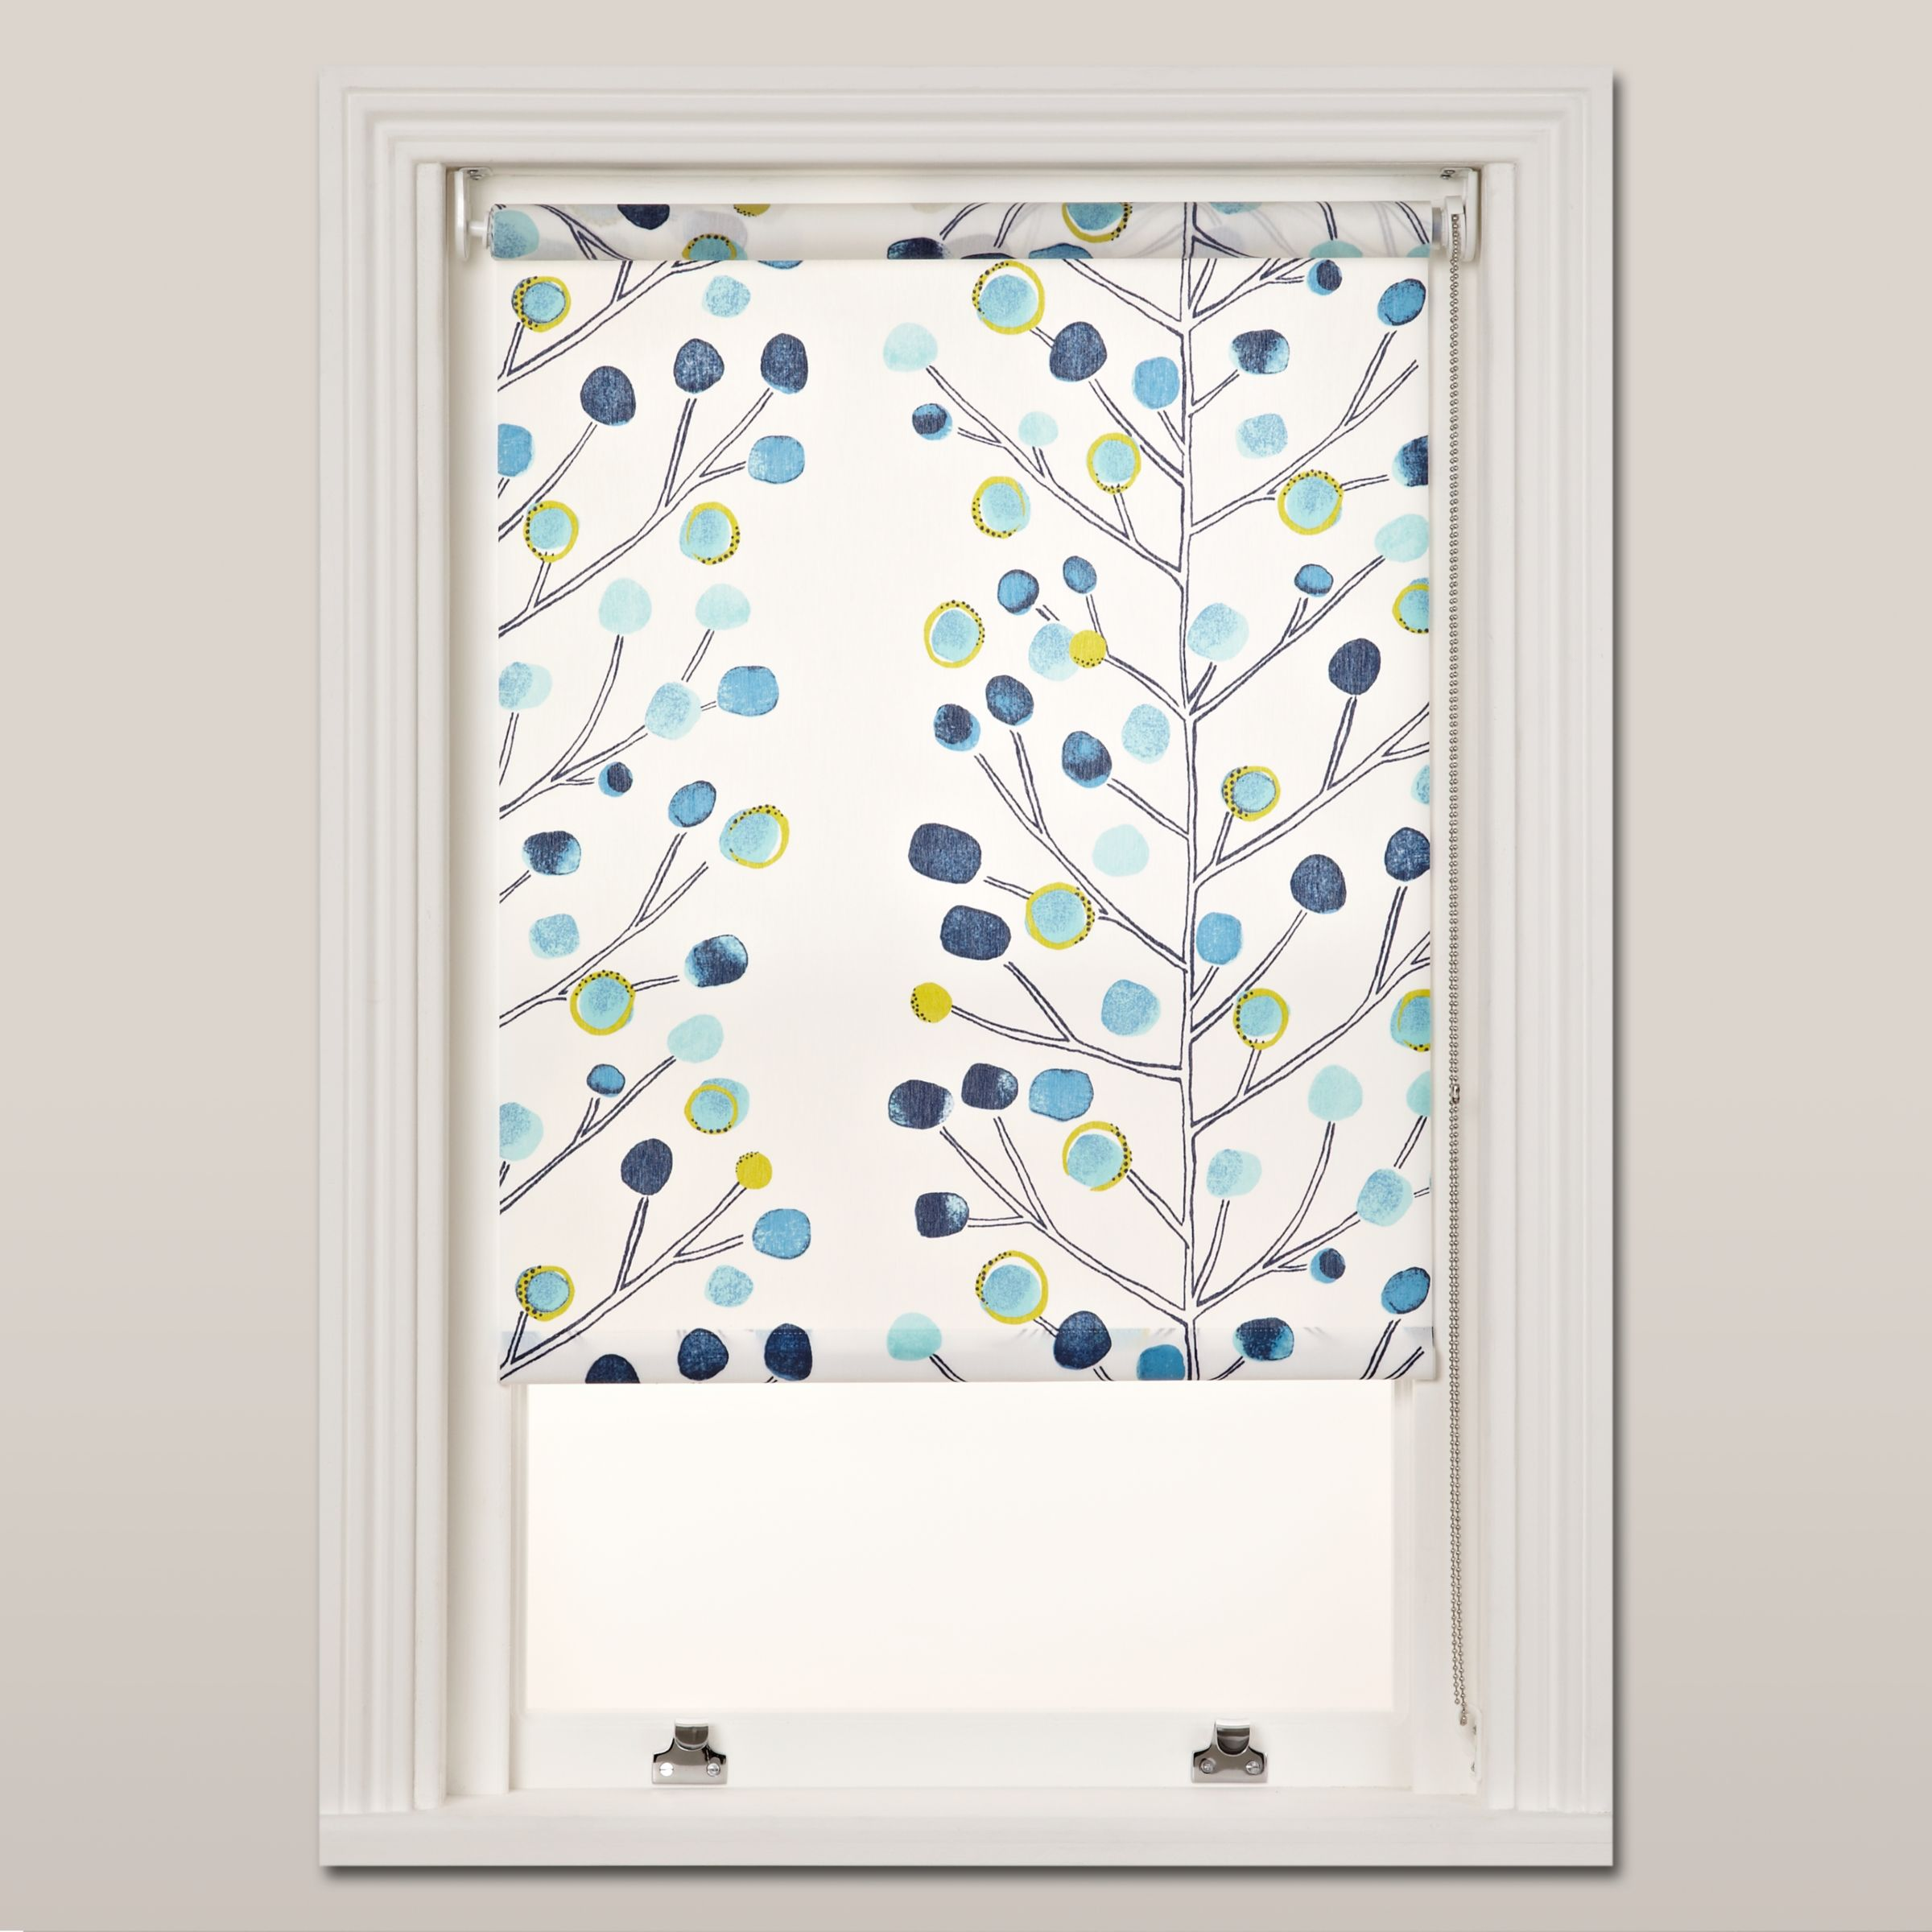 Scion Scion Berry Tree Roller Blind, Chain Mechanism